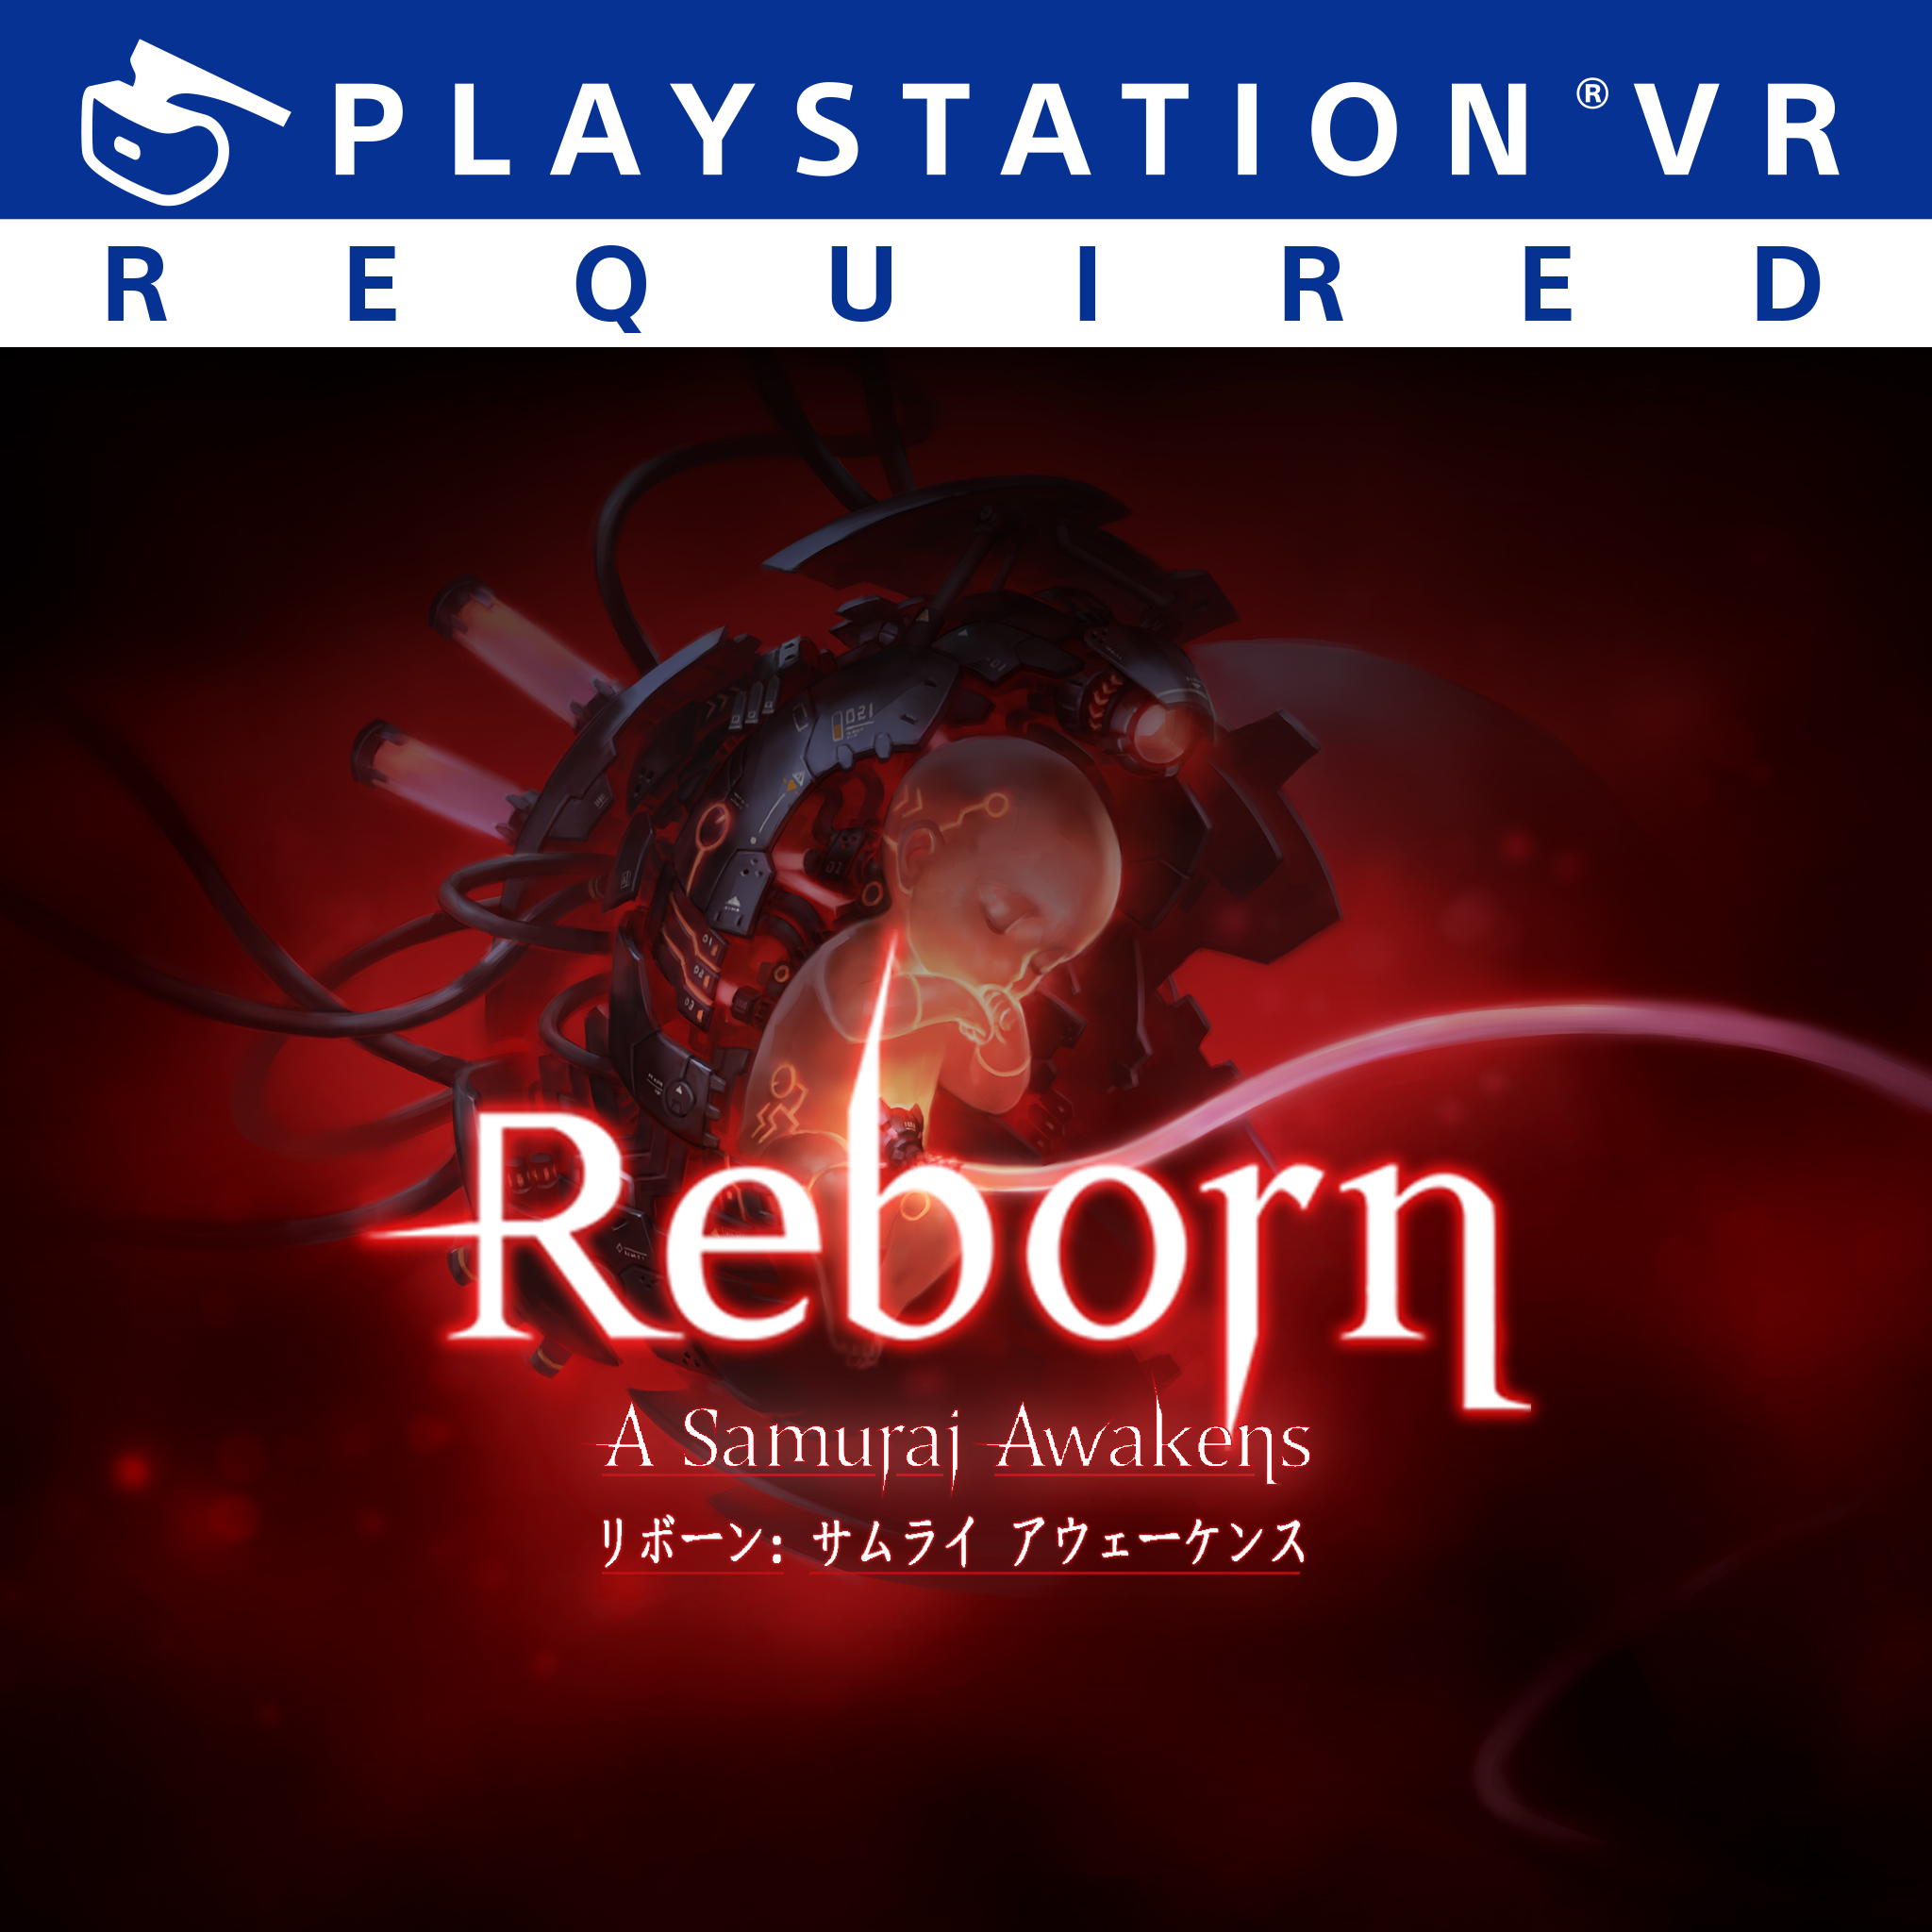 Thumbnail of Reborn: A Samurai Awakens on PS4